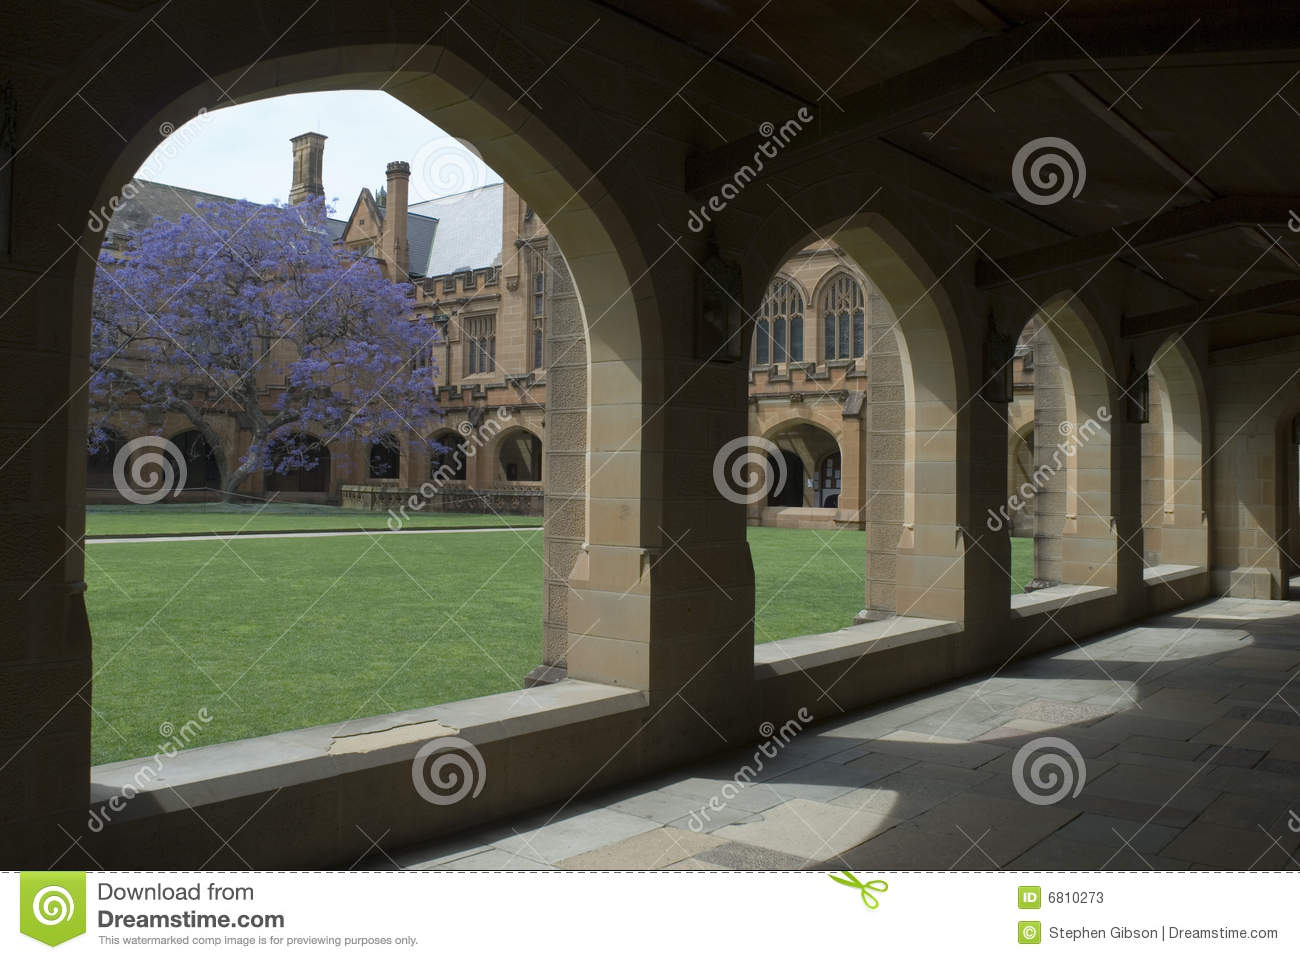 Hotel and Hospitality Management sydney university art